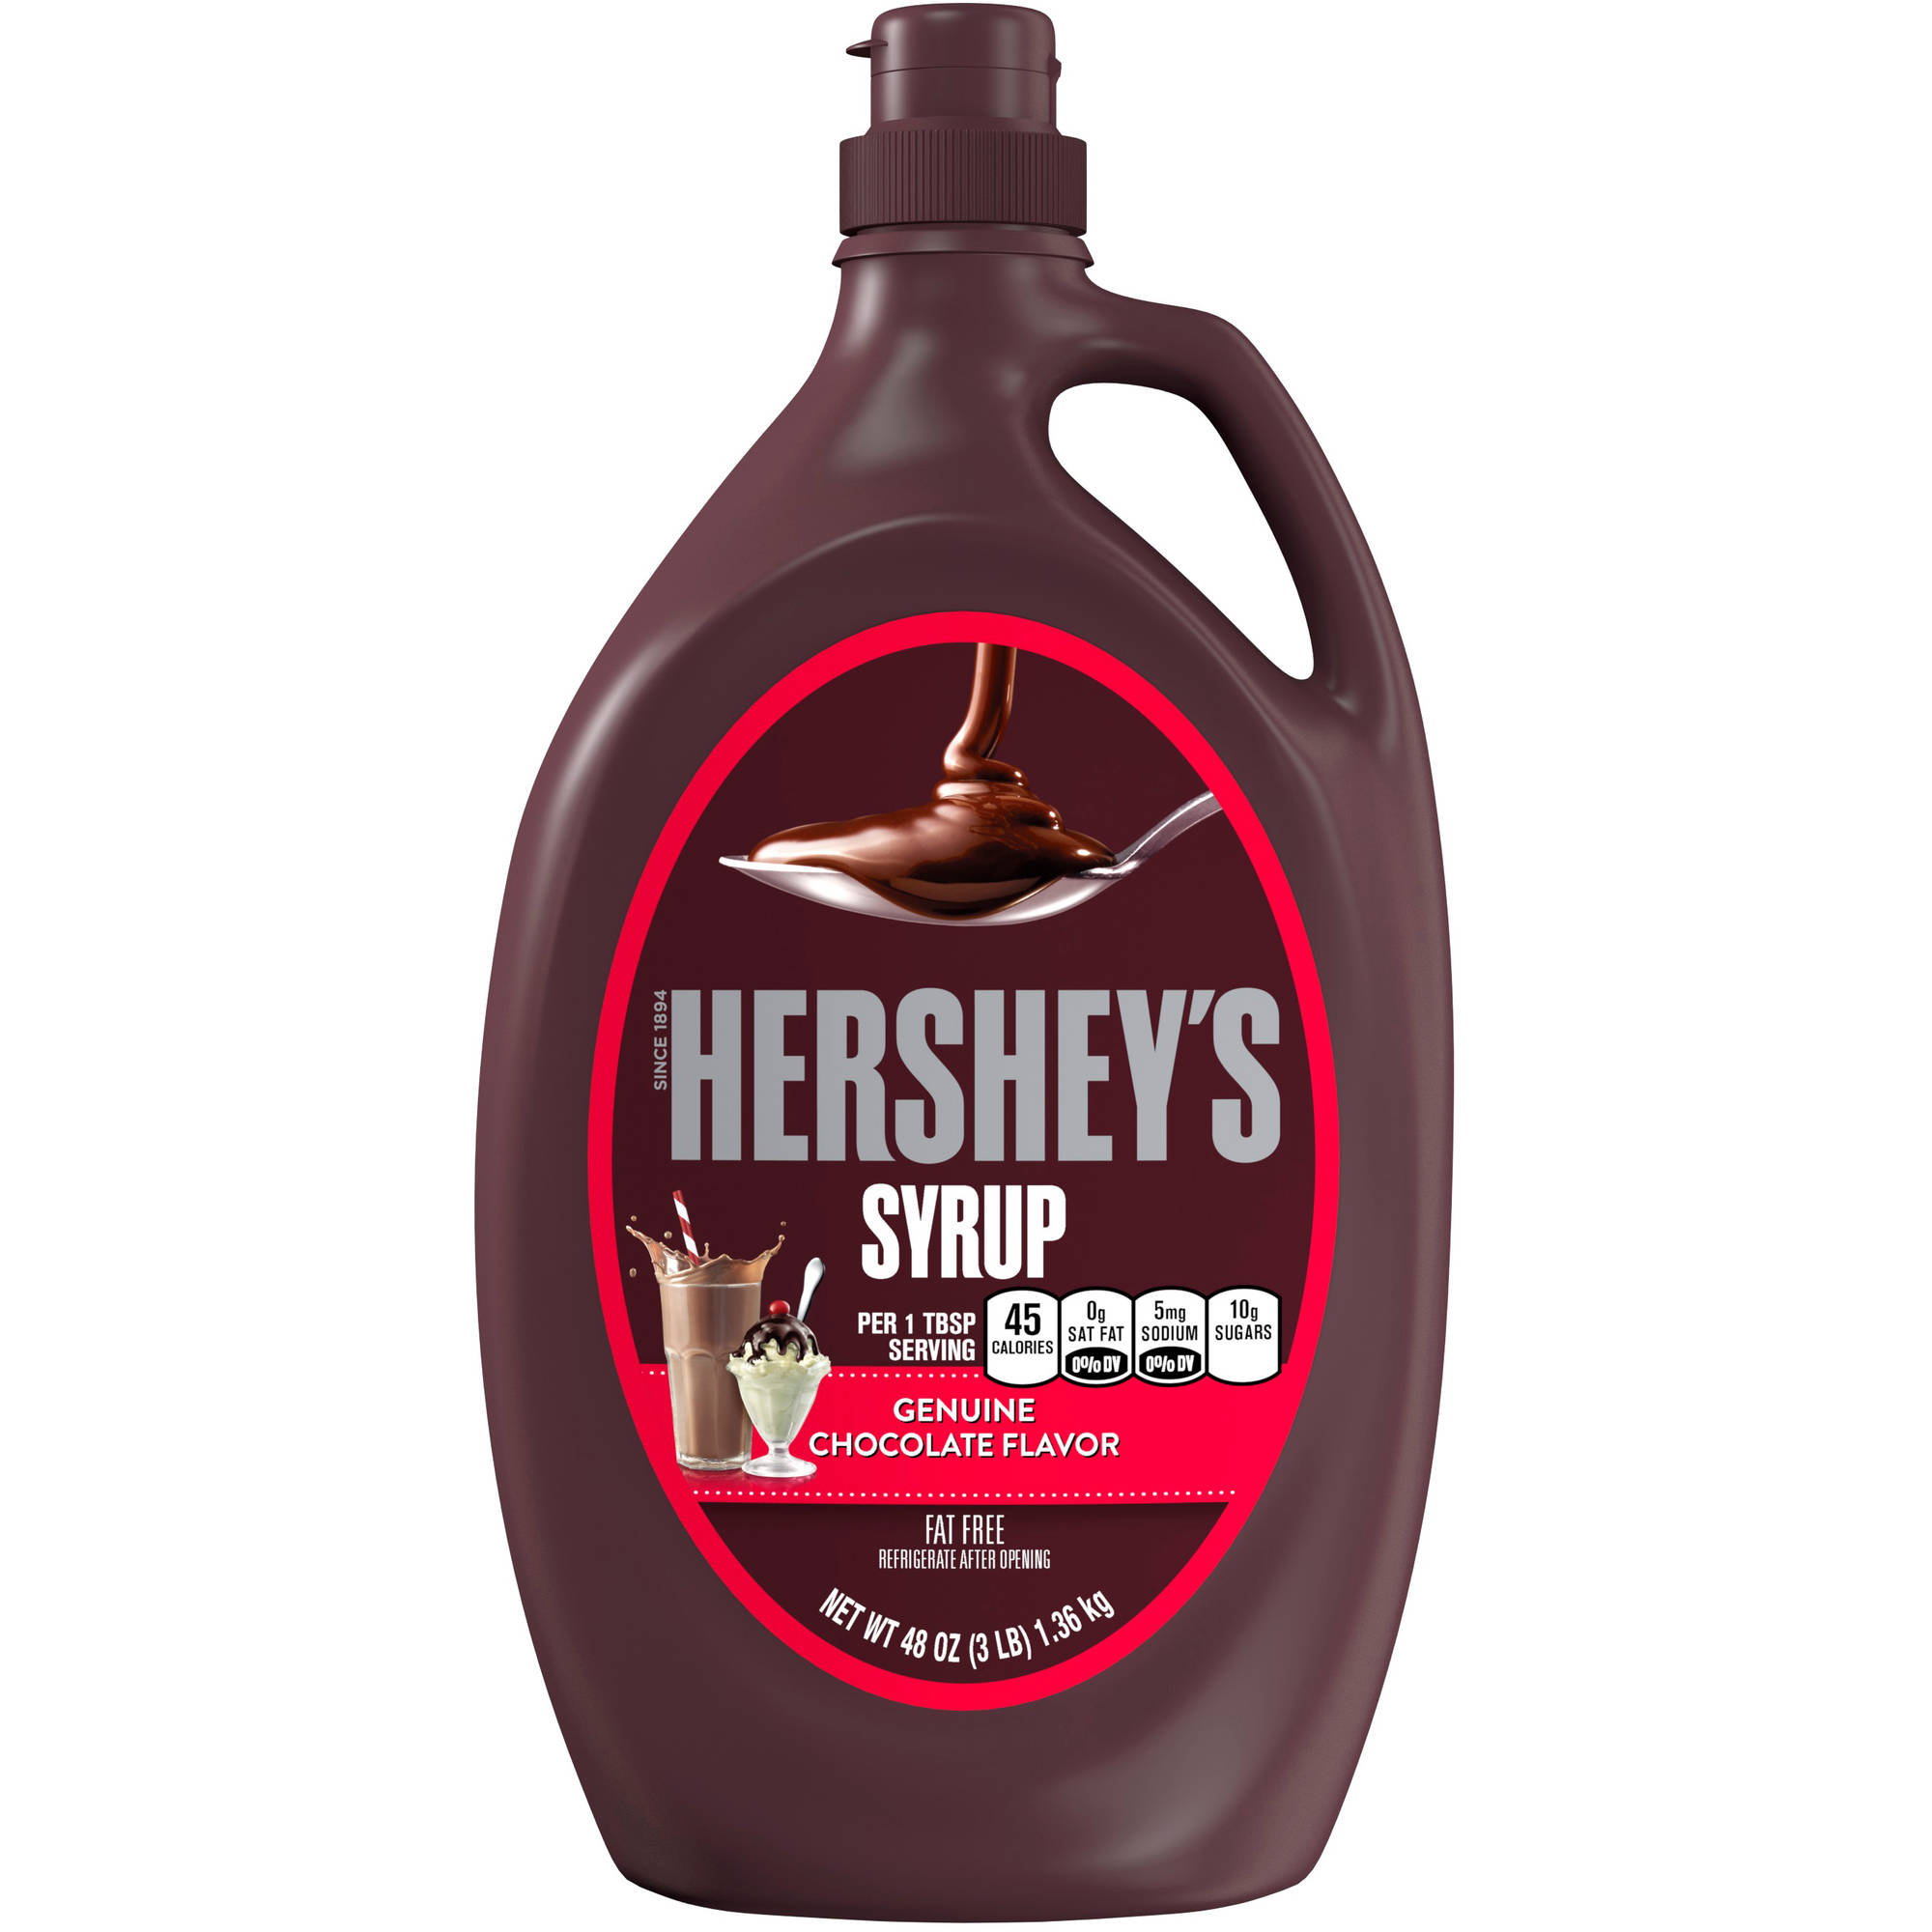 Hershey's Genuine Chocolate Syrup, 48 oz